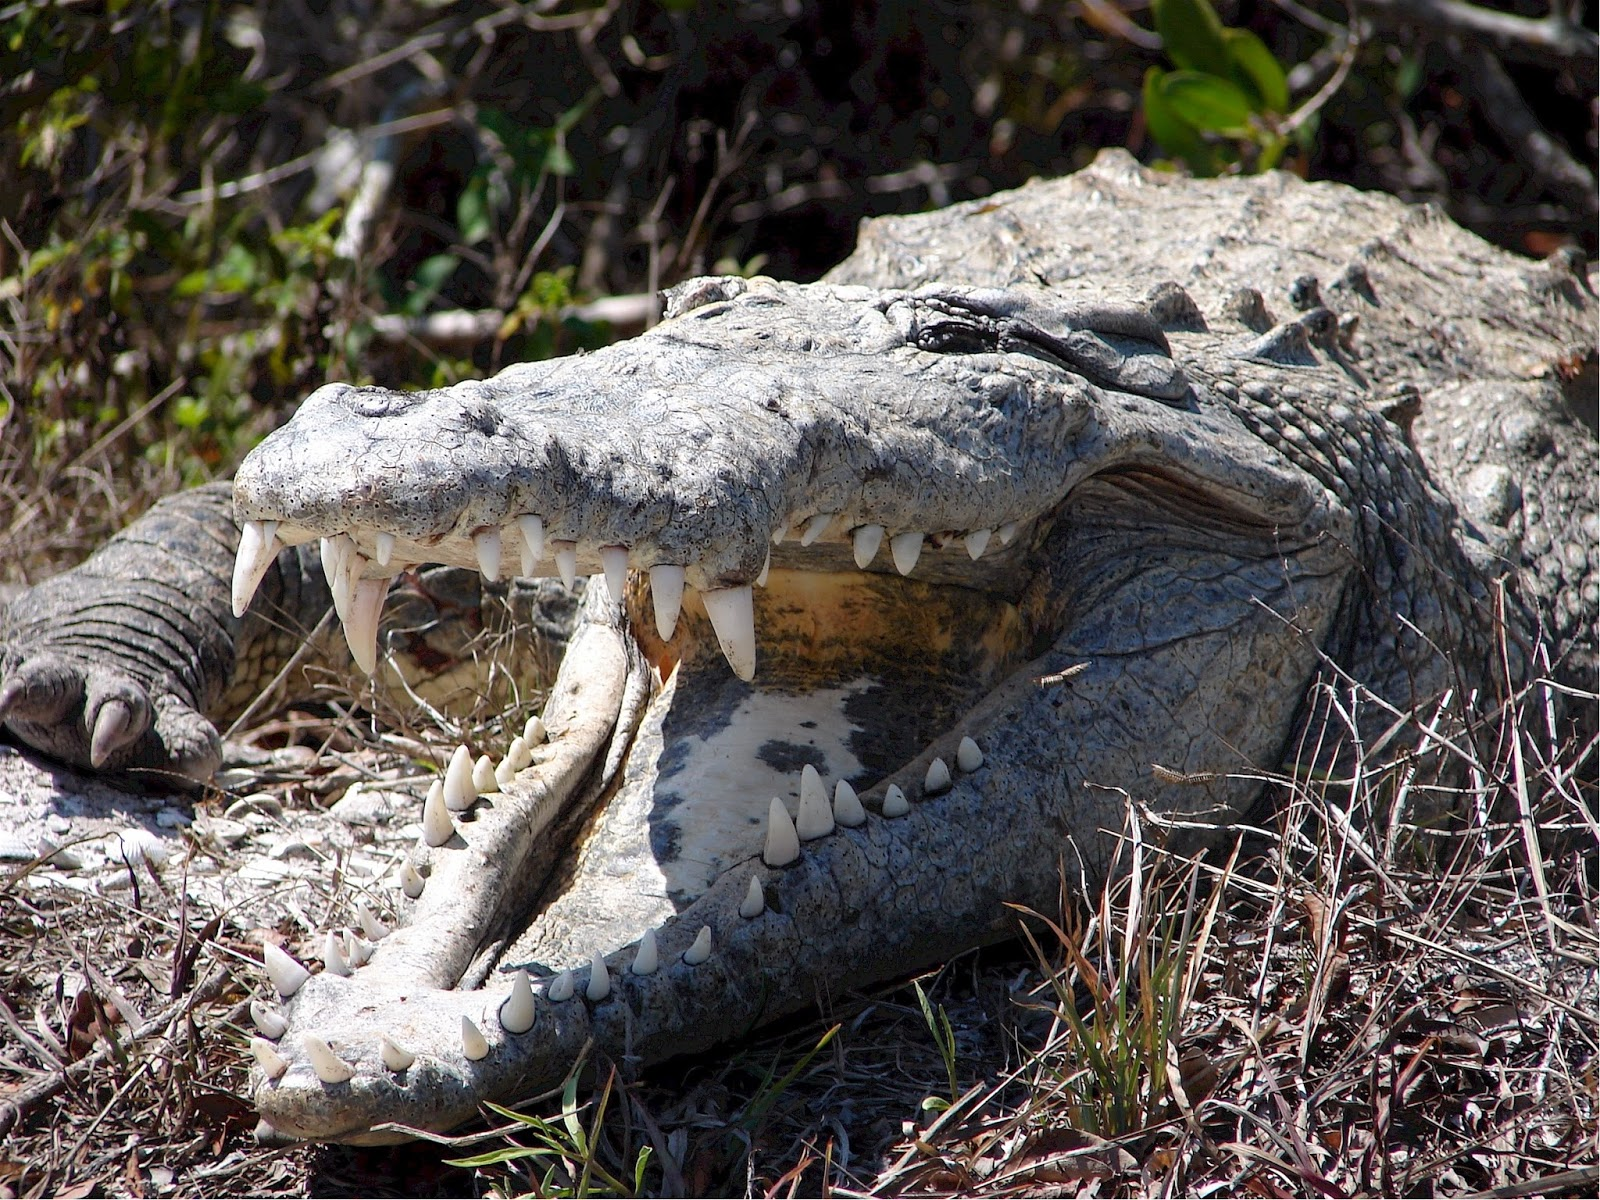 An aggressive crocodile with mouth open.